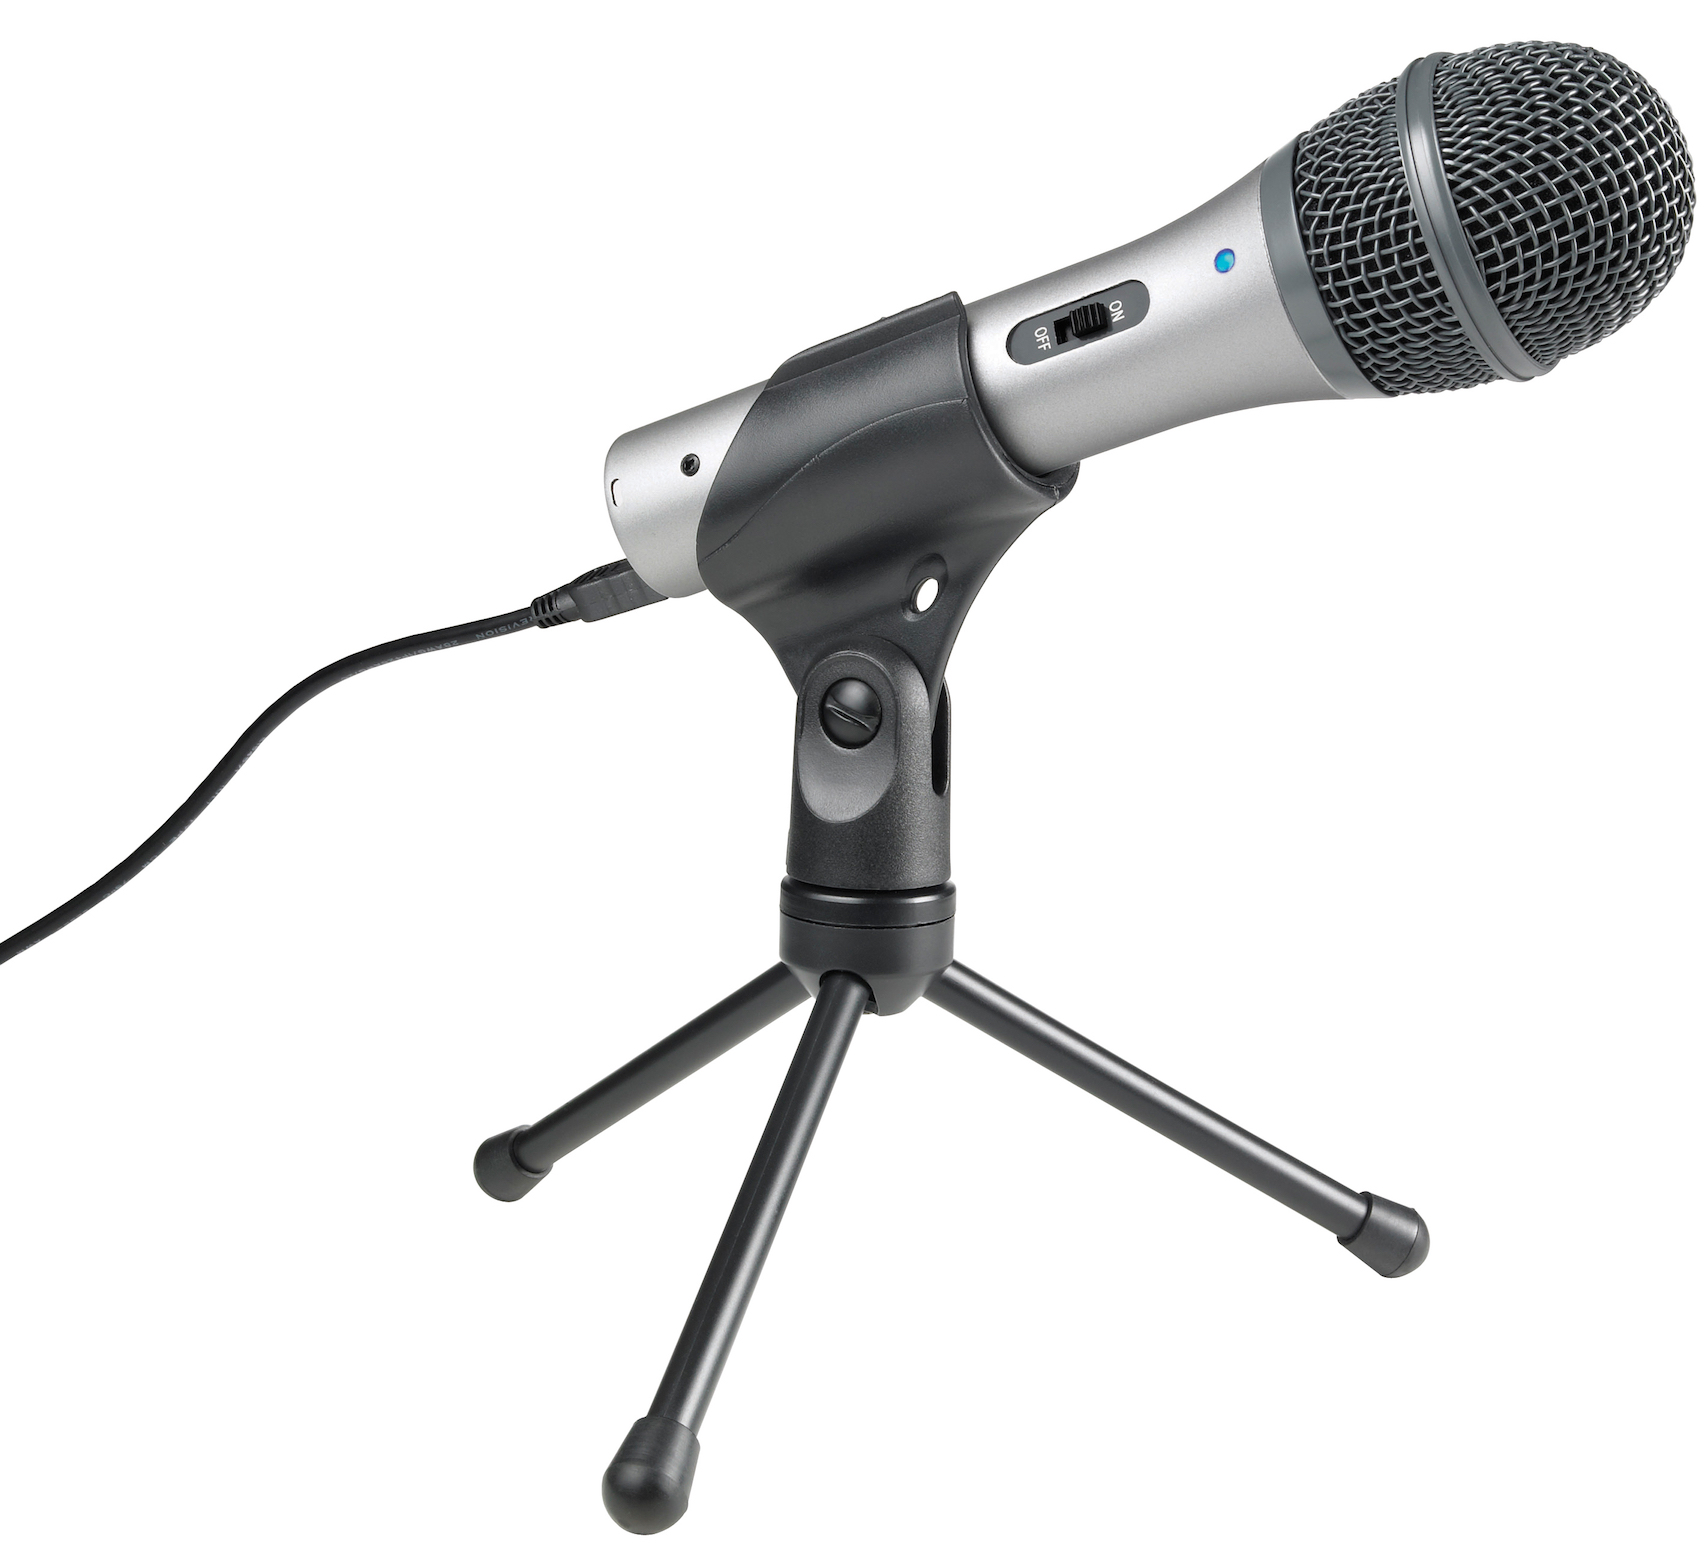 Audio-Technica ATR2100 Cardioid Dynamic XLR & USB Microphone